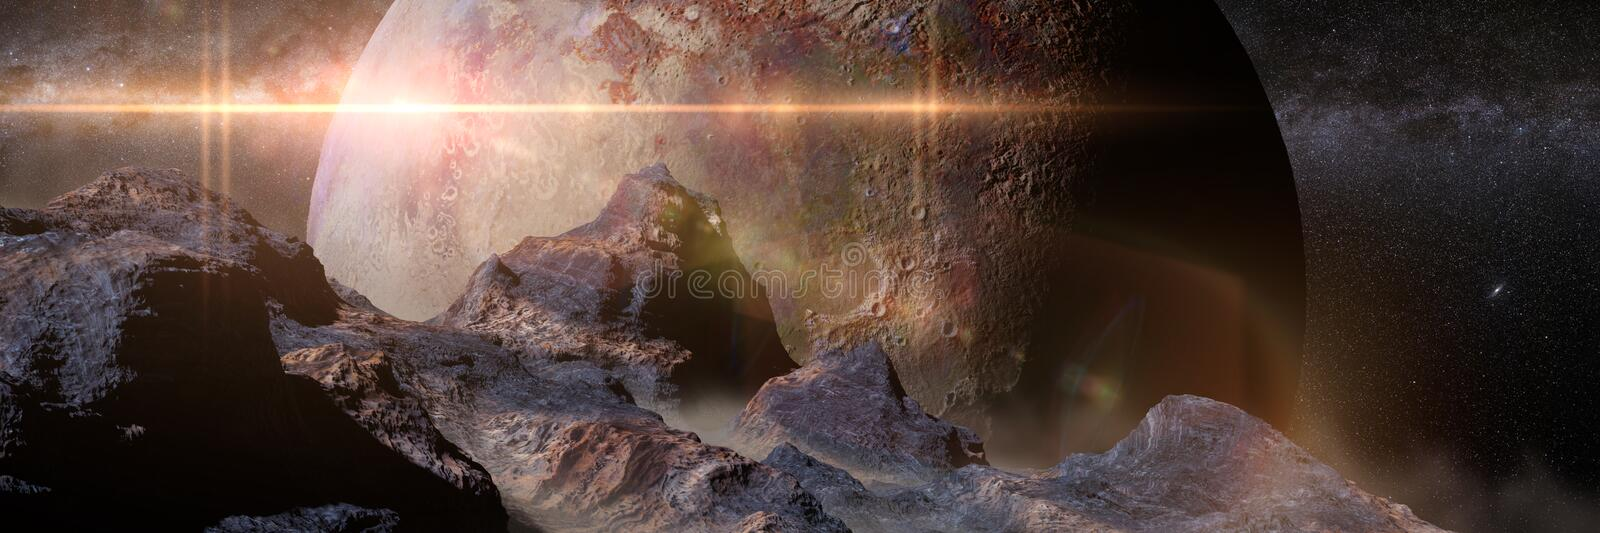 Alien landscape with planet over the horizon 3d illustration banner, elements of this image are furnished by NASA stock illustration